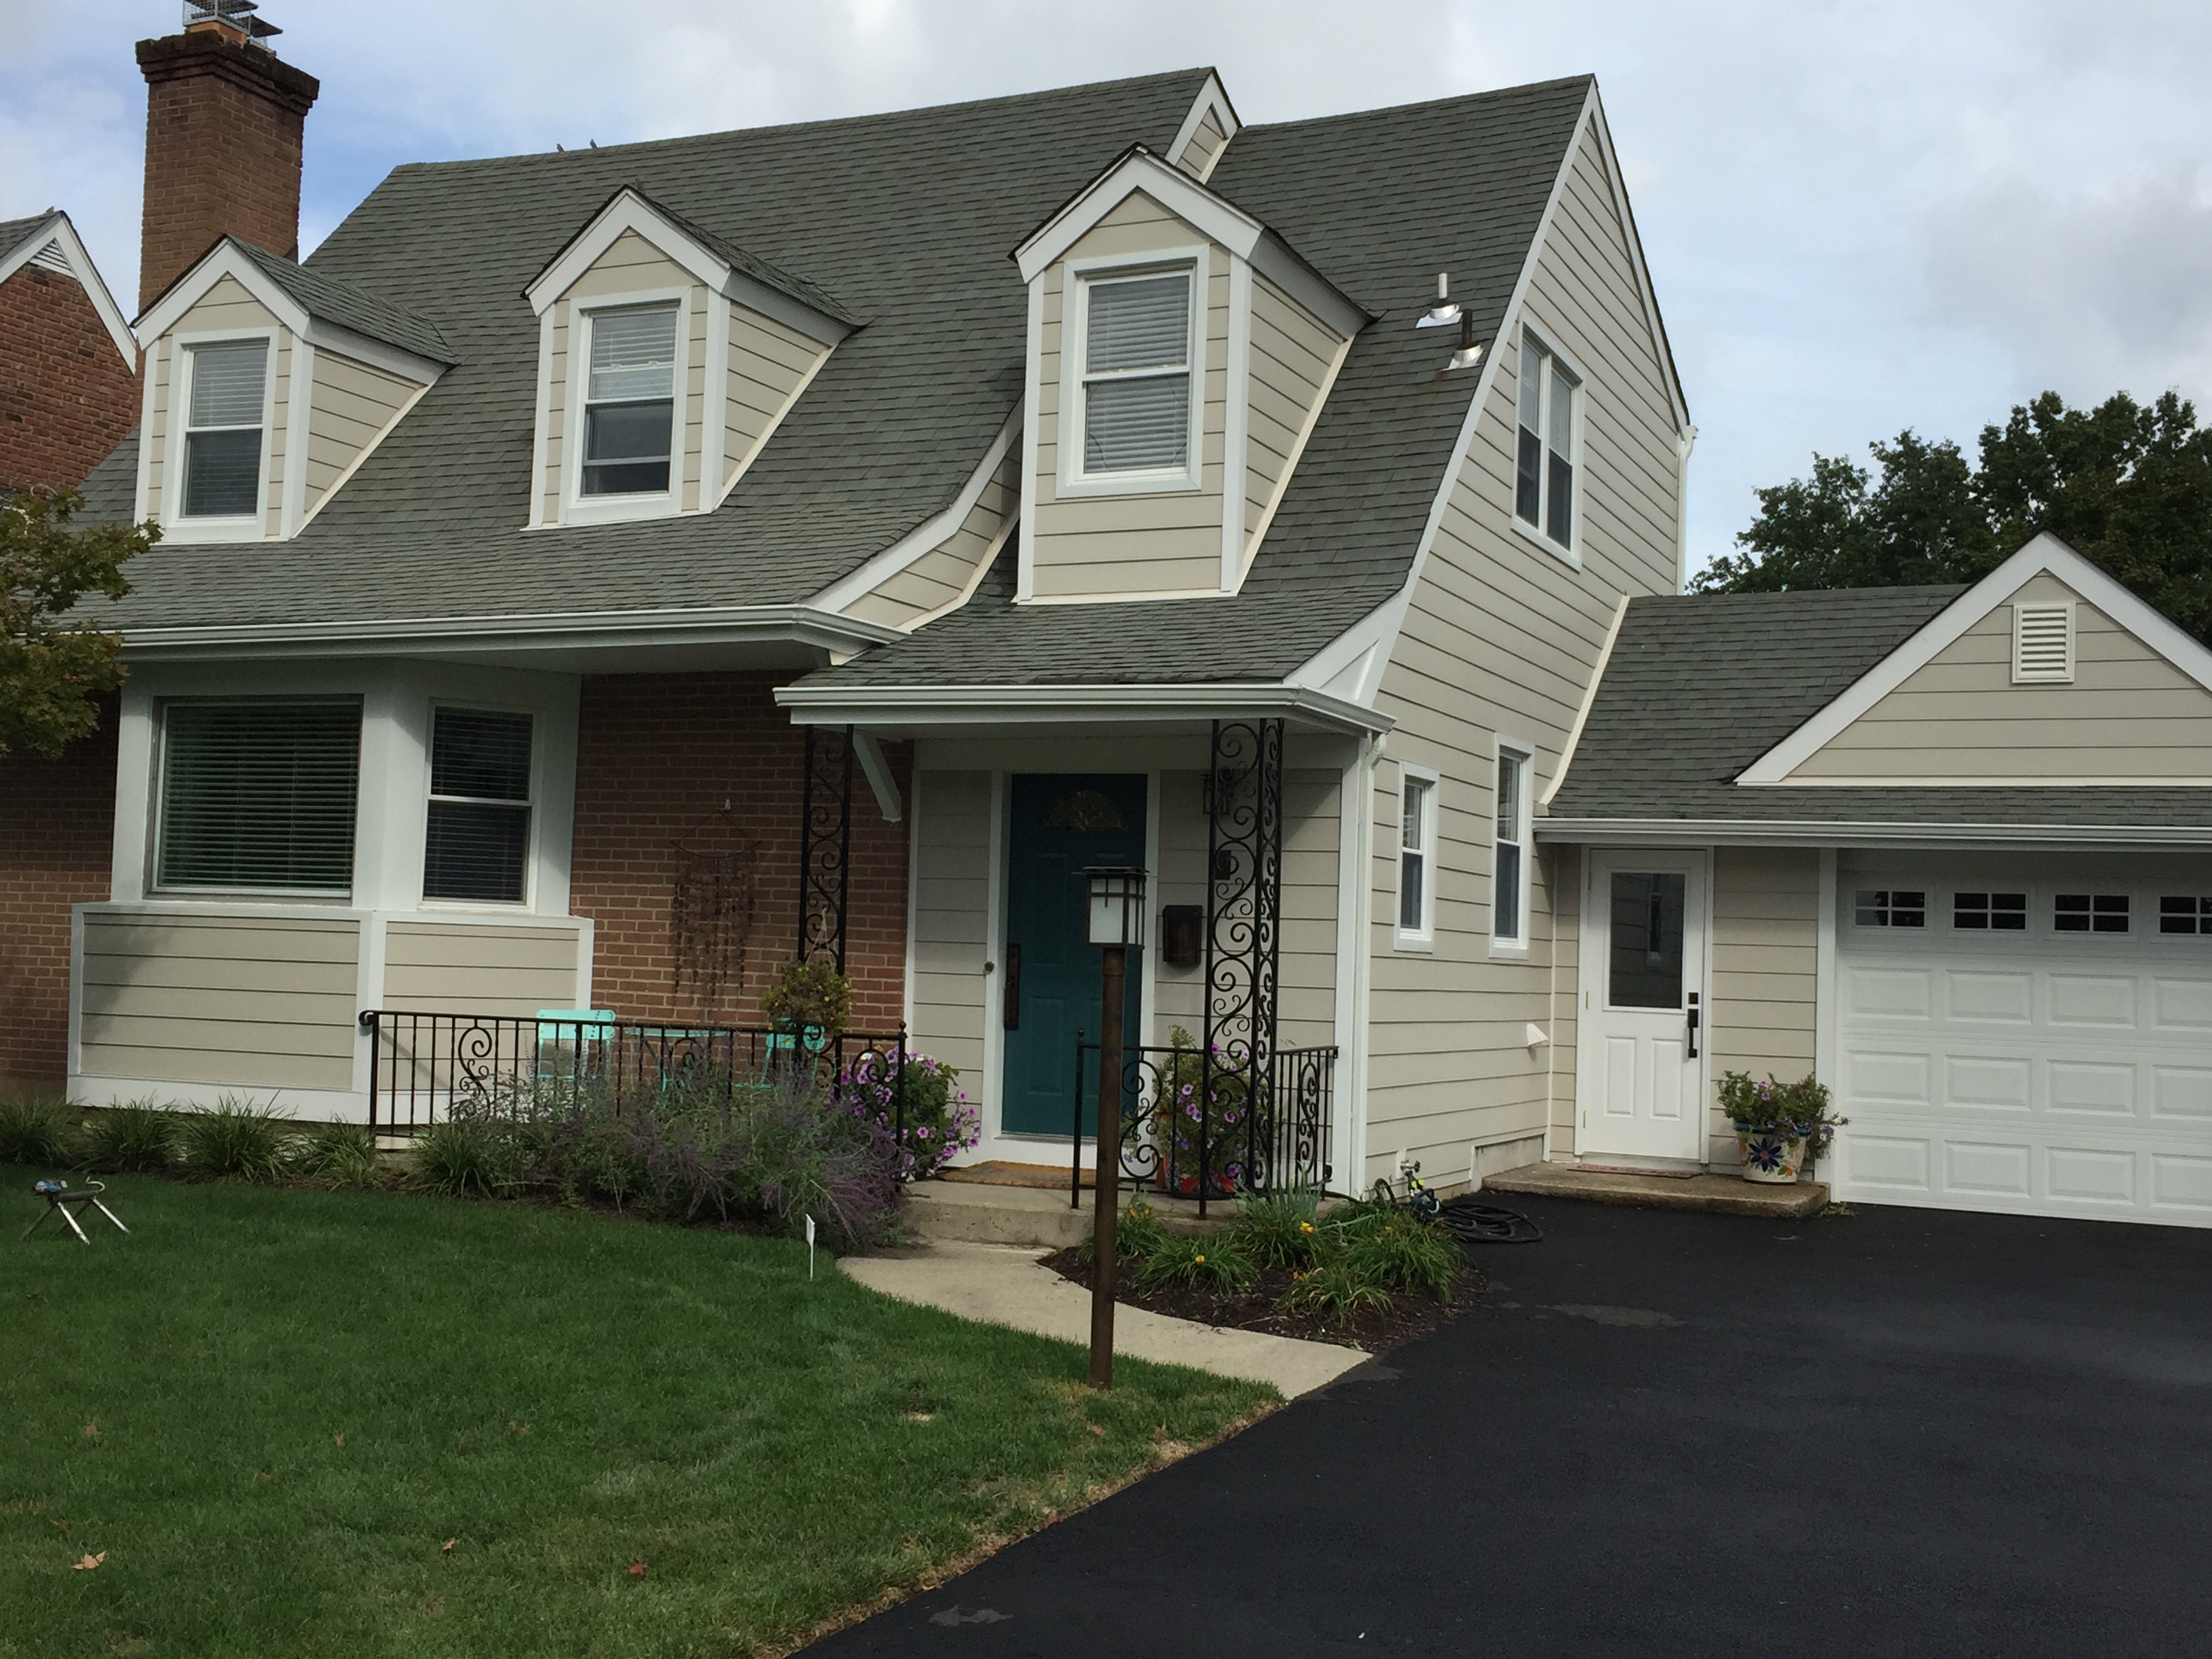 Single Family Home for Rent at Totally Renovated! 9 Howard Street Madison, 07940 United States